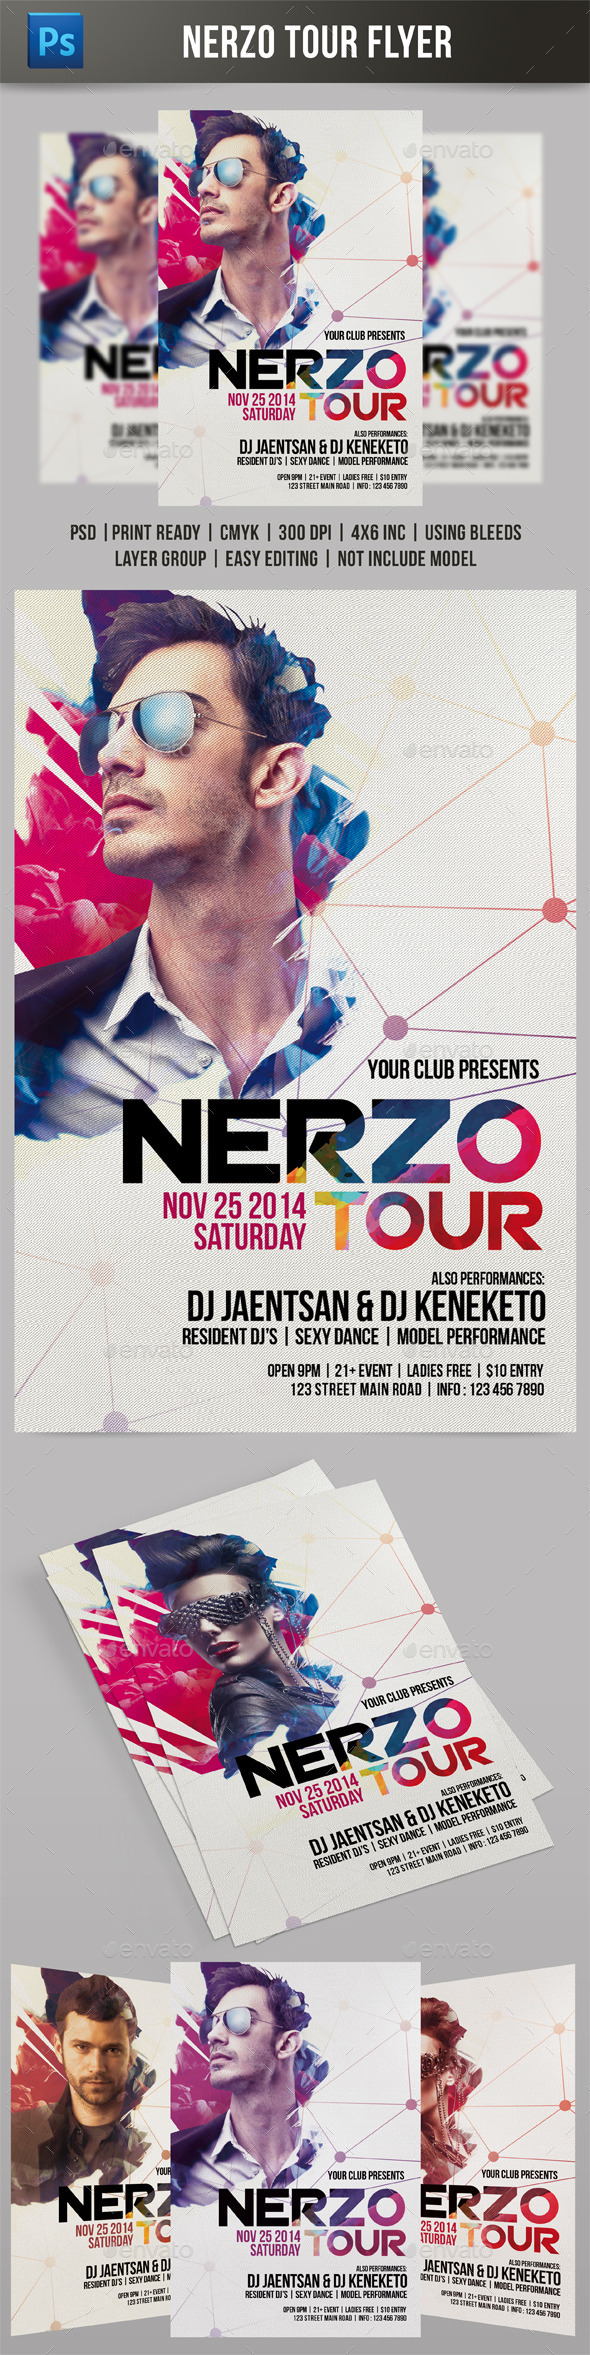 Nerzo Tour Flyer - Events Flyers